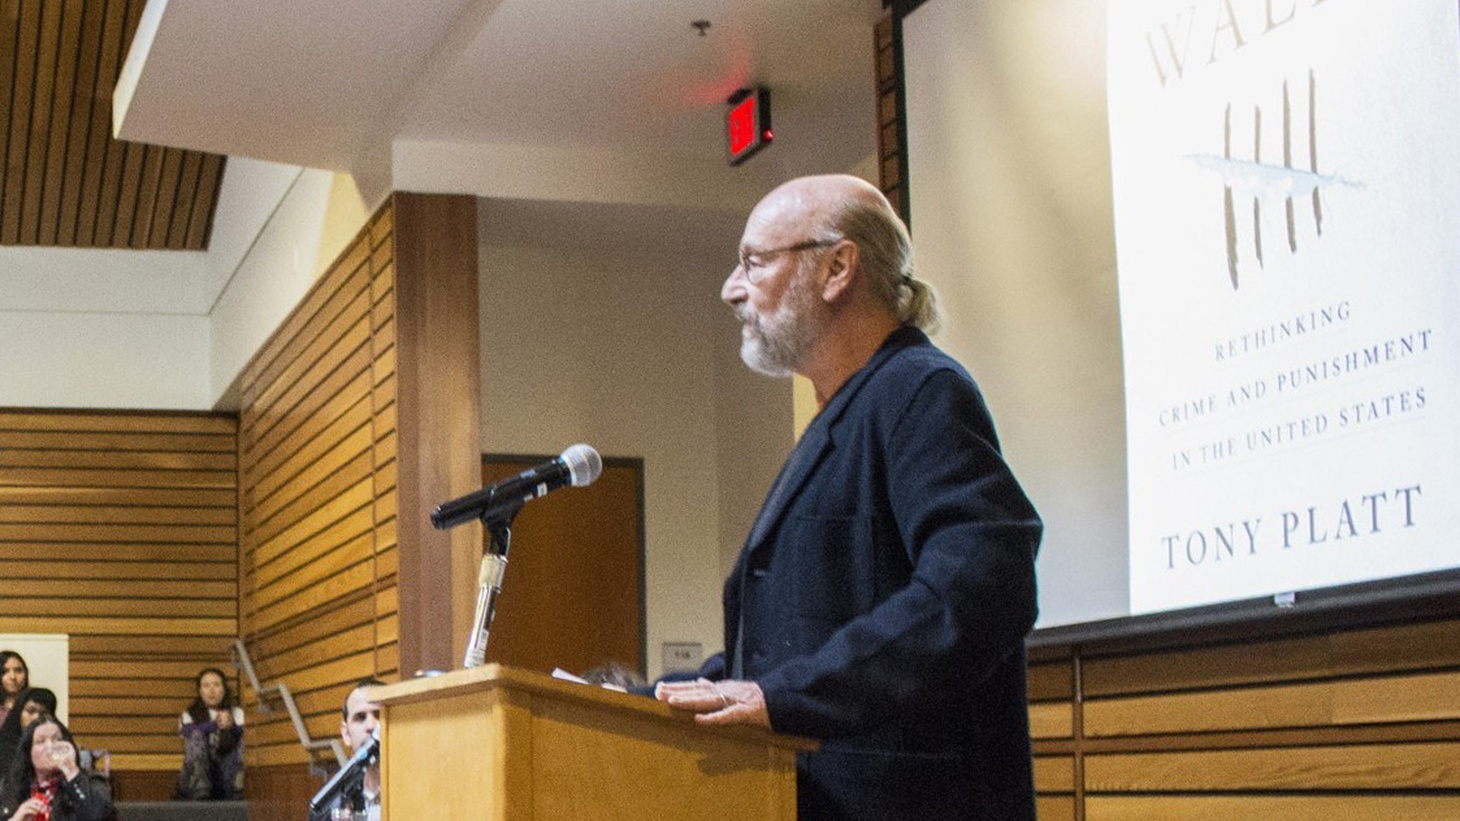 Tony Platt, author of 'Beyond These Walls: Rethinking Crime and Punishment in the United States, speaks to students, professors, and community memebrs in The Native American Forum at Humboldt State University on Feb. 14.